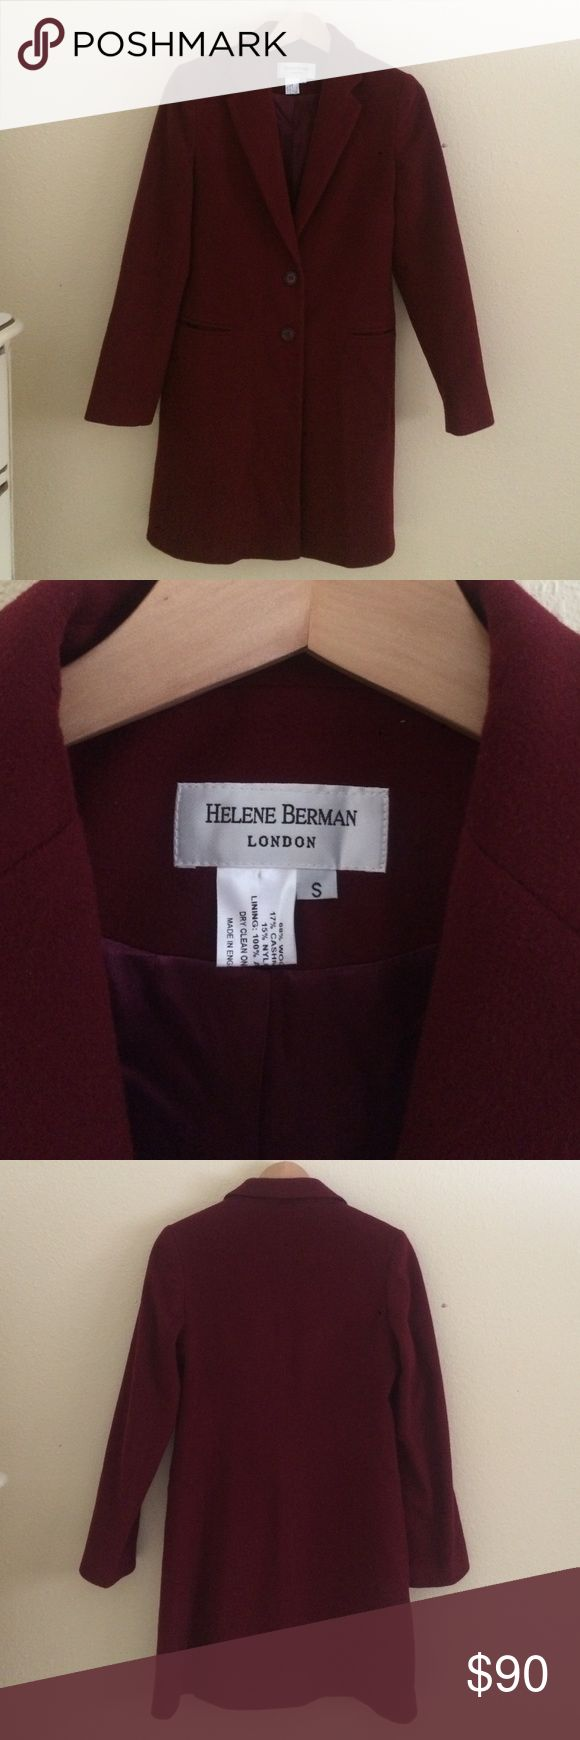 """Cashmere Blend Coat Helene Berman London Helene Berman London coat size S. 68% wool 17% cashmere 15% nylon with lining 100% acetate. made in England, dry clean. soft and lightweight. excellent condition. approx length from top collar 37"""", approx 24"""" sleeve, 2 button closure. last picture is example only of what it looks like on from Nordstrom website- firt 3 pictures is actual coat in this listing. smoke free home. offer buttom only please. Helene Berman Jackets & Coats Trench Coats"""